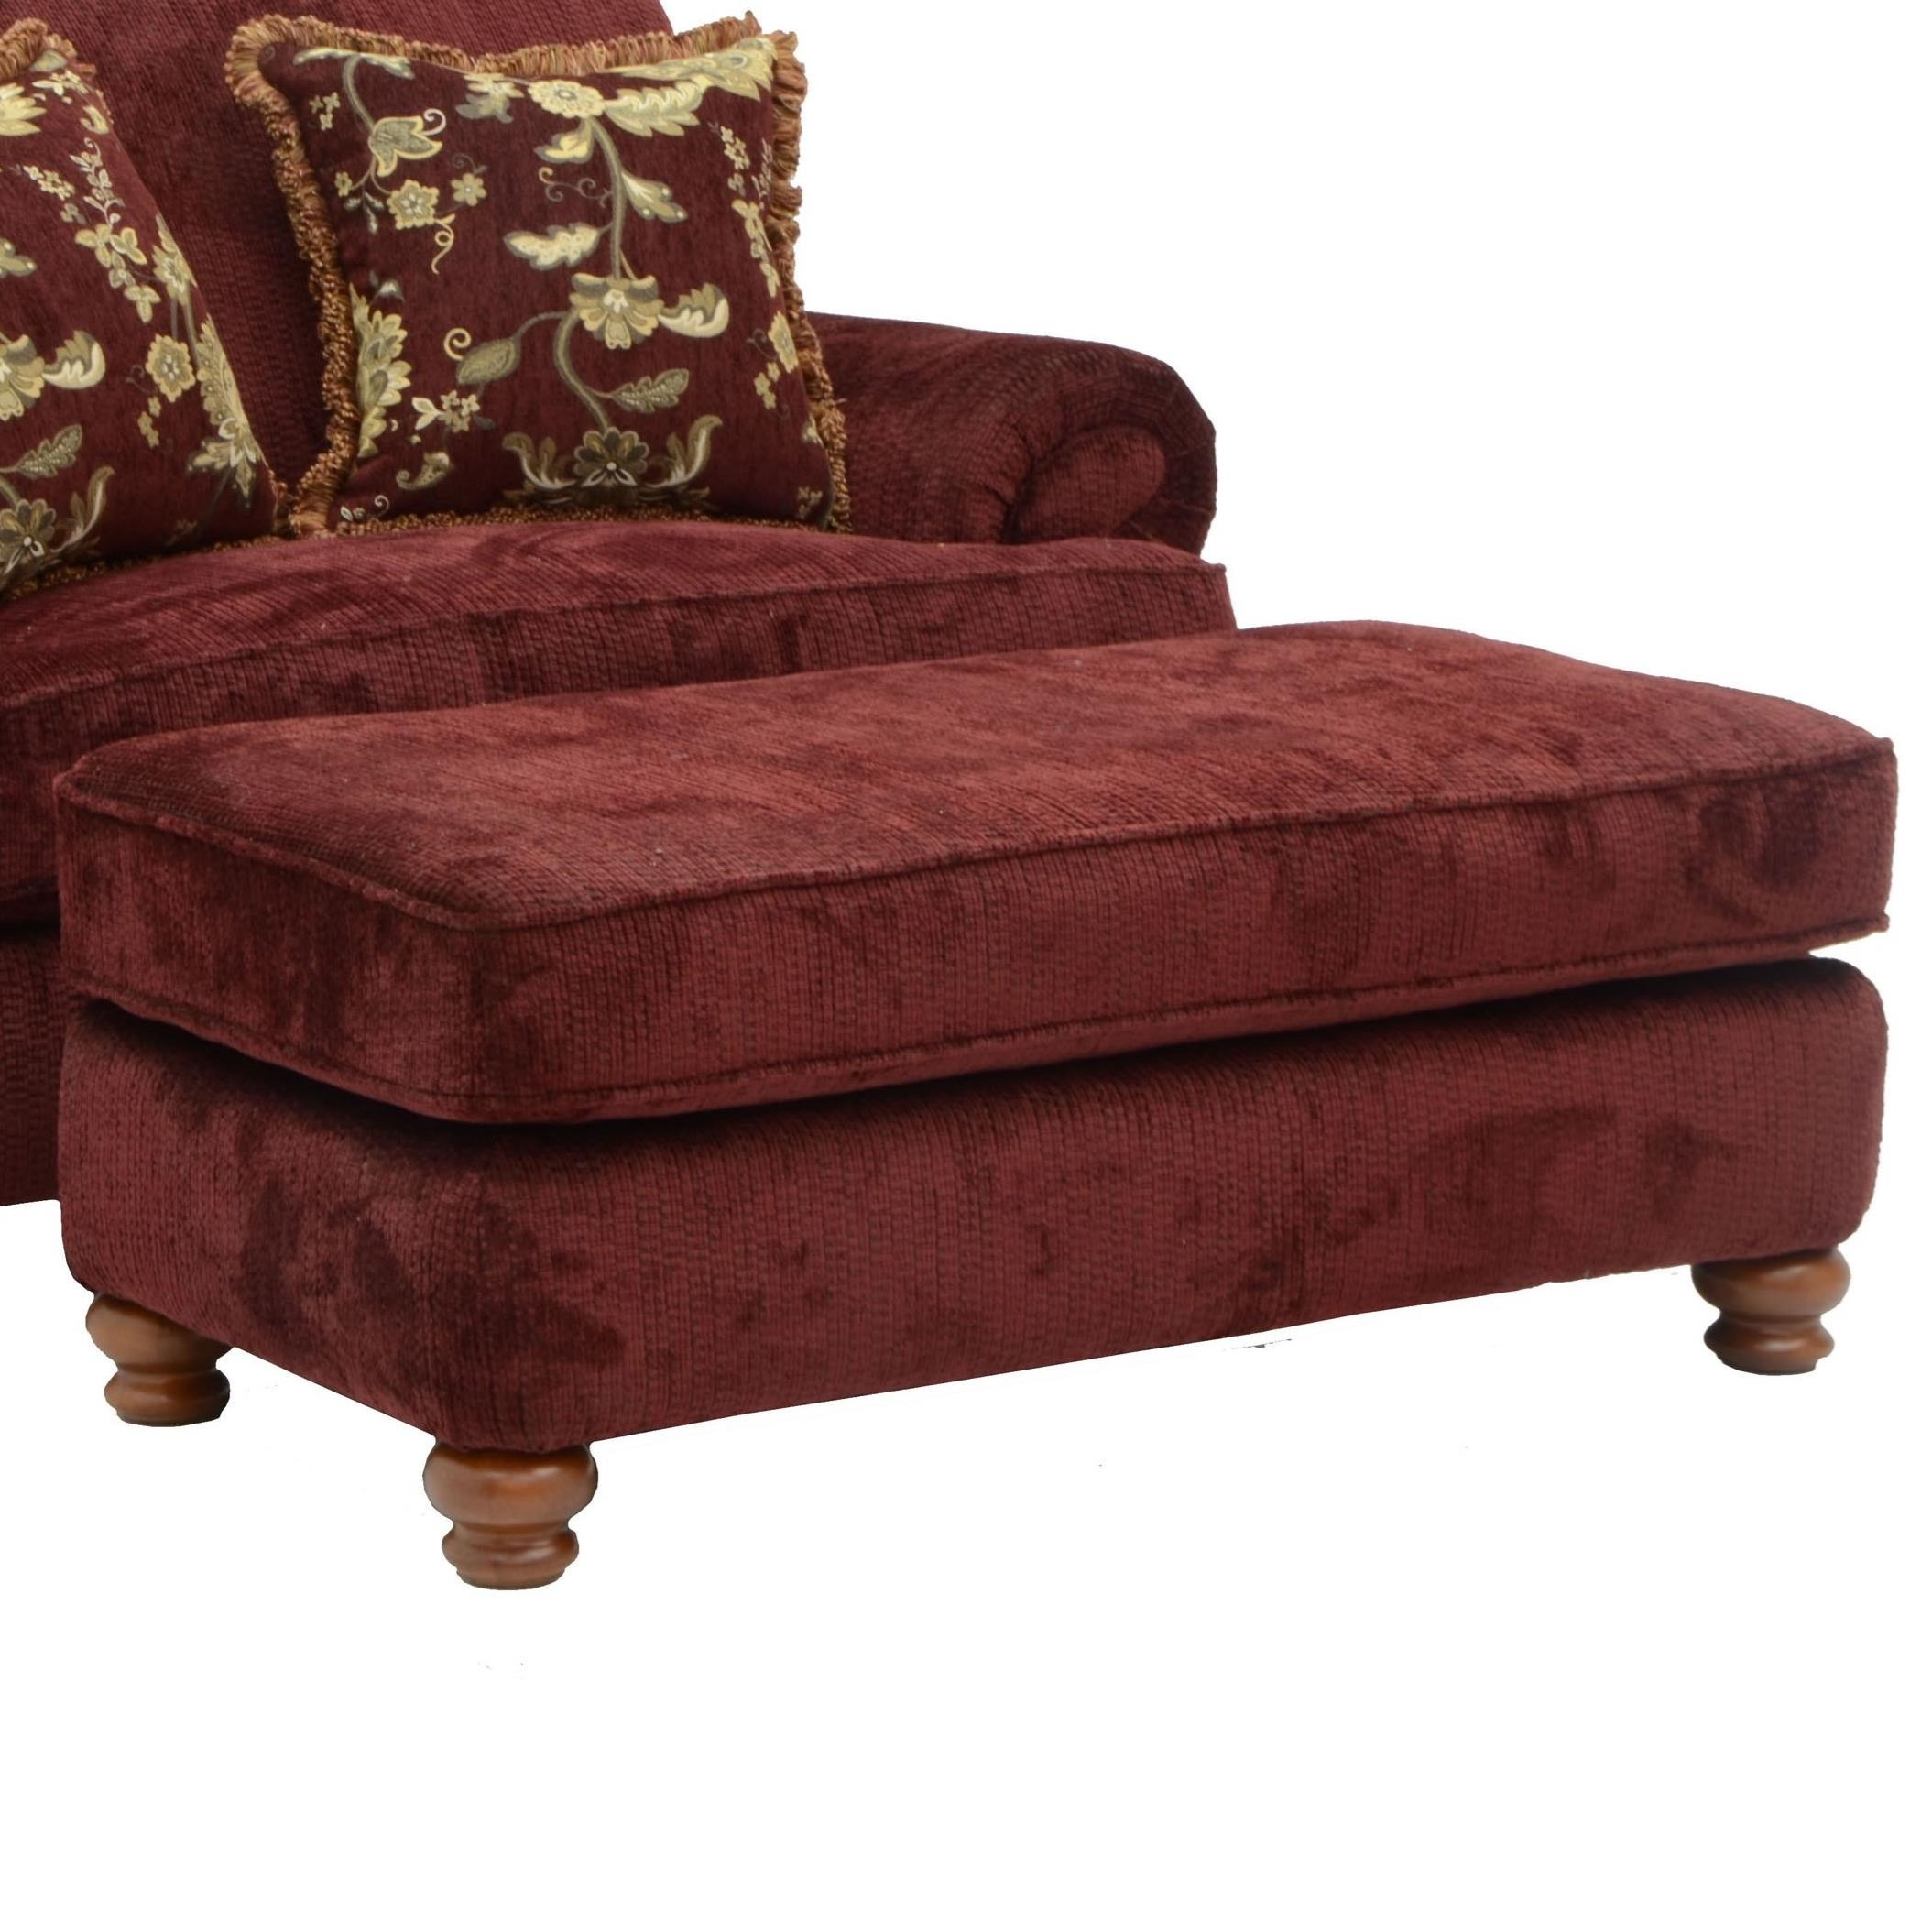 Rectangular Ottoman With Bun Feet